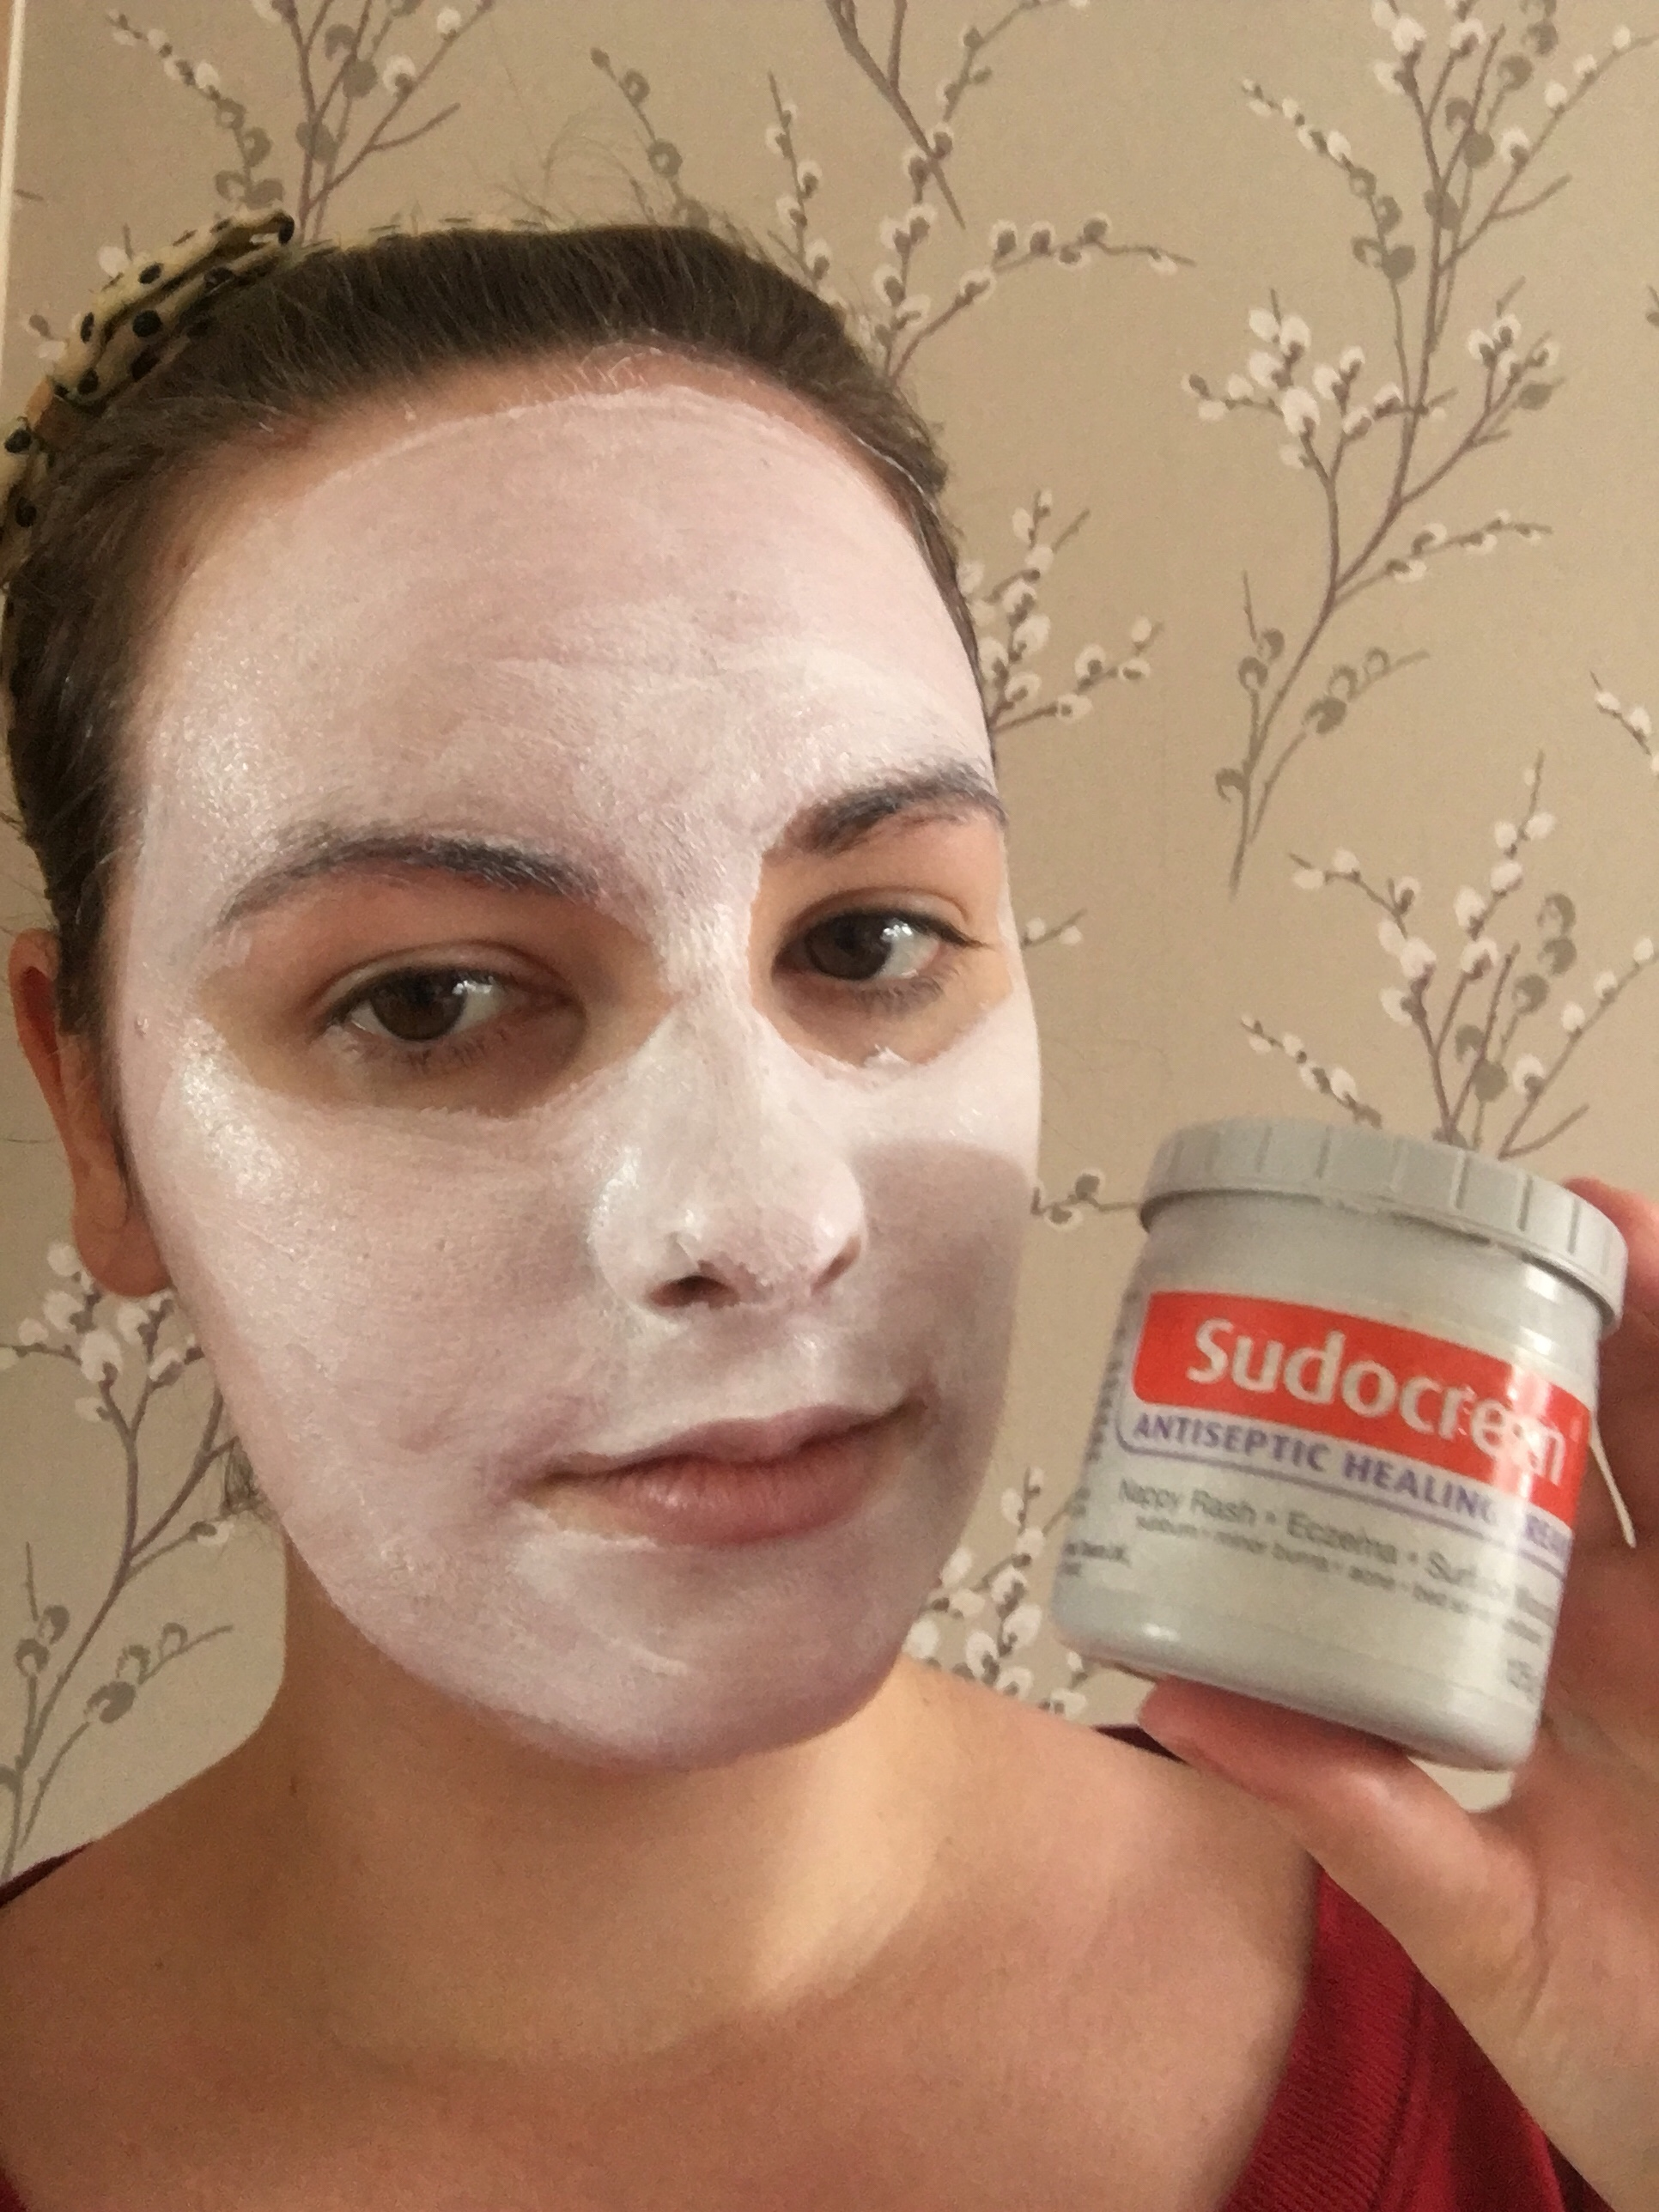 Me having a Sudocrem facemask